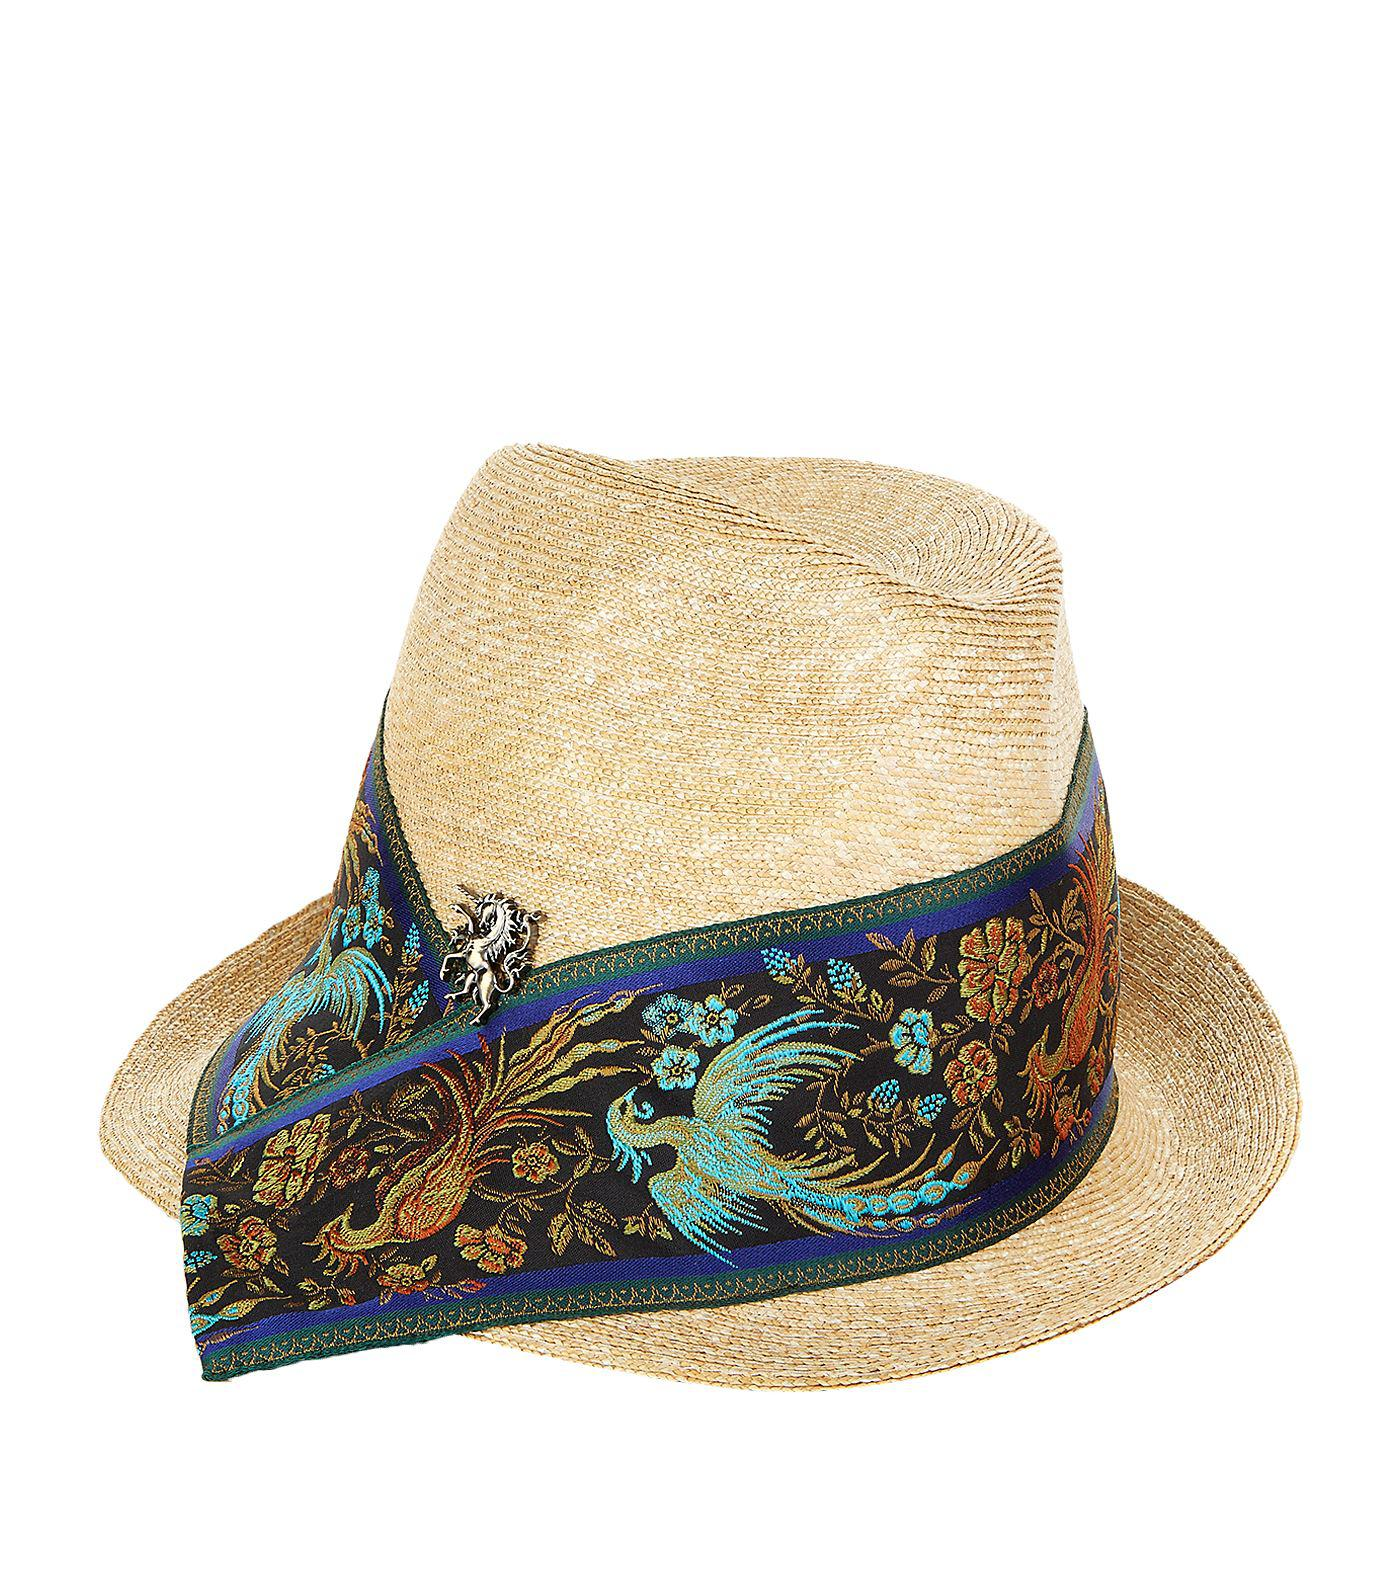 Philip Treacy Embroidered Band Trilby Hat in Natural - Lyst dd489aef60b6